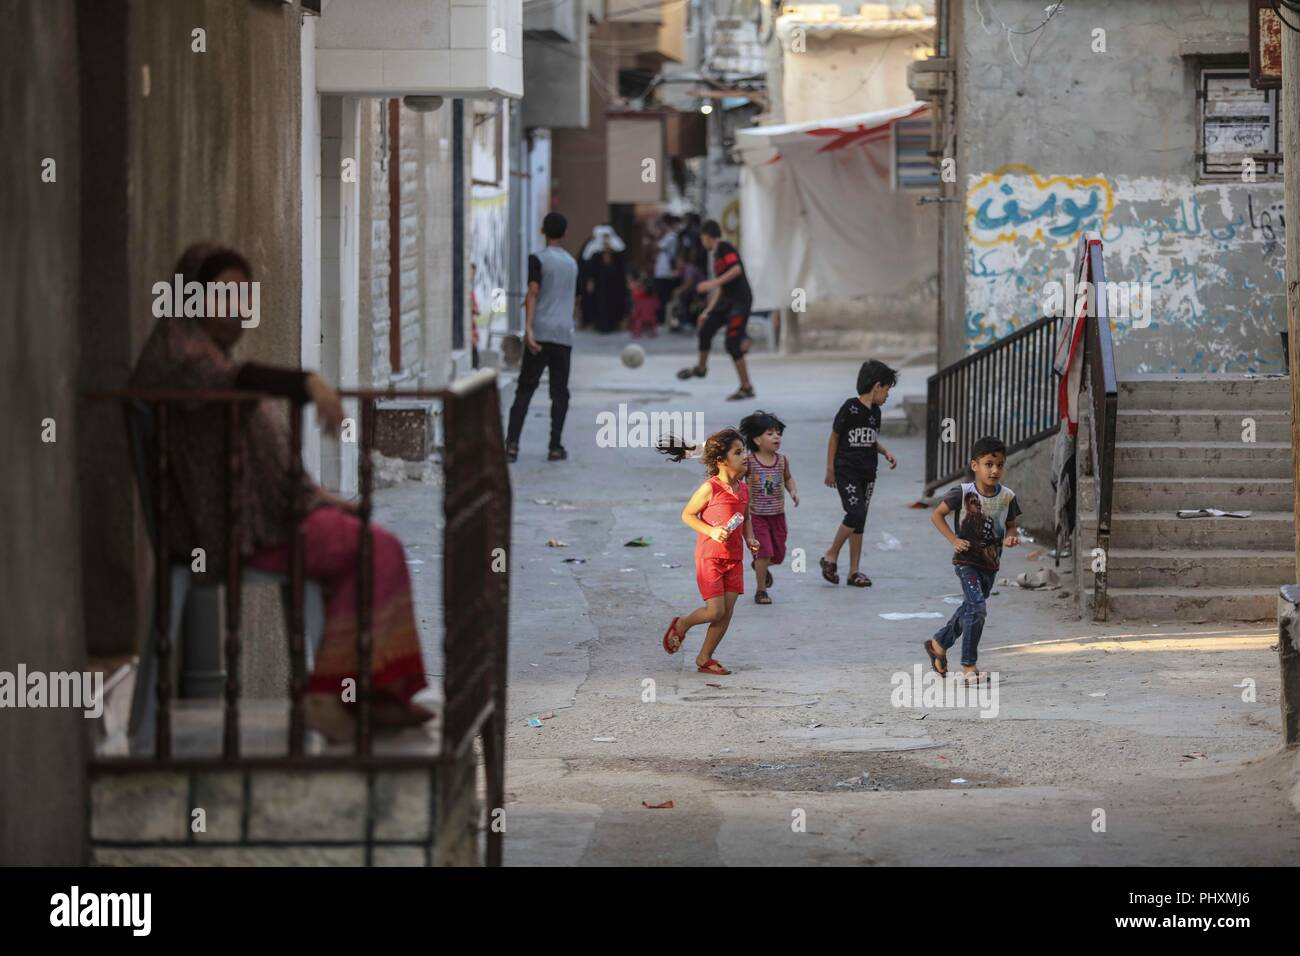 Gaza. 2nd Sep, 2018. Palestinian children play outside their home in the Shati refugee camp in Gaza City, on Sept. 2, 2018. Palestinian President Mahmoud Abbas said Sunday that the question of the Palestinian refugees has to be resolved in accordance with the legitimate international resolutions. Credit: Wissam Nassar/Xinhua/Alamy Live News - Stock Image